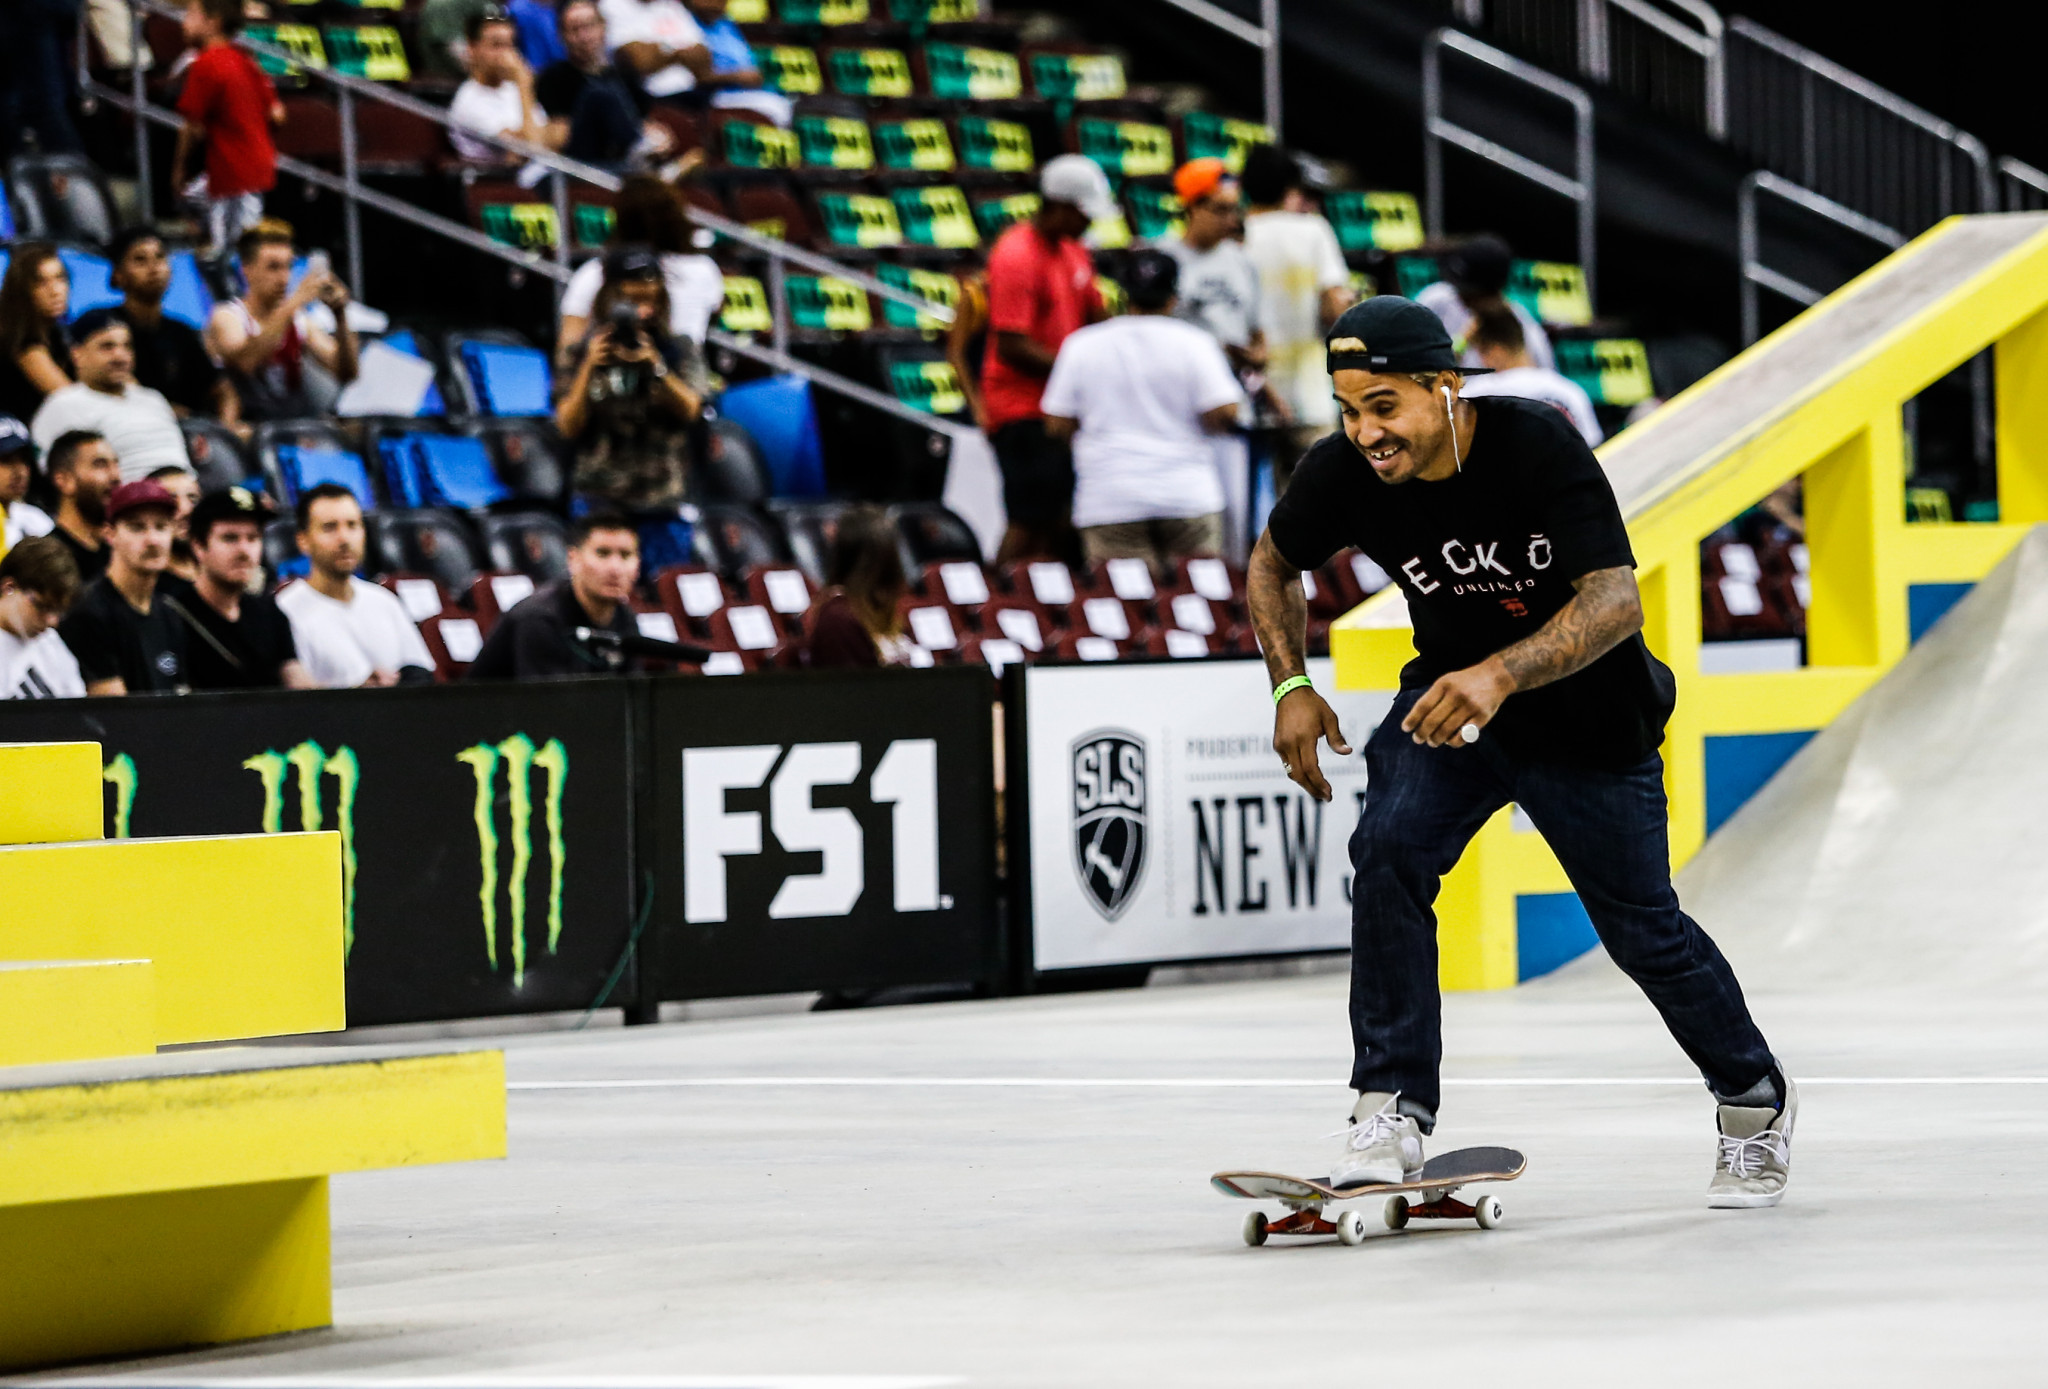 Manny Santiago wins pro street skateboarding title at FISE Battle of the Champions